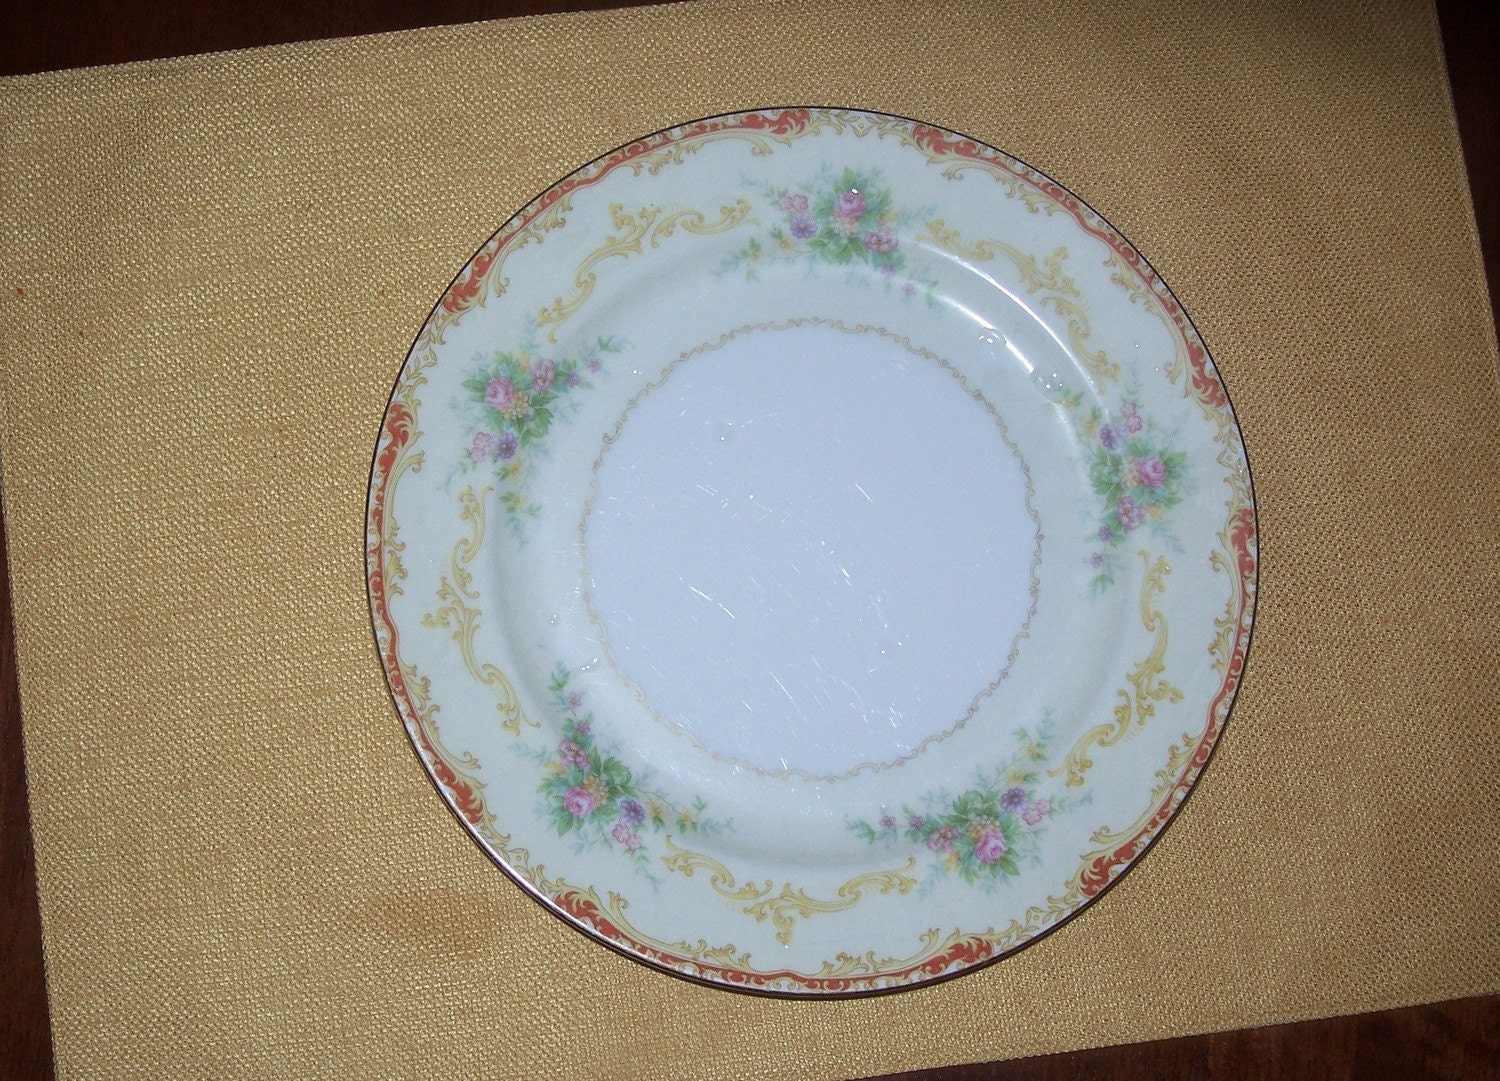 Old China Patterns Stunning With Old Noritake China Patterns Image